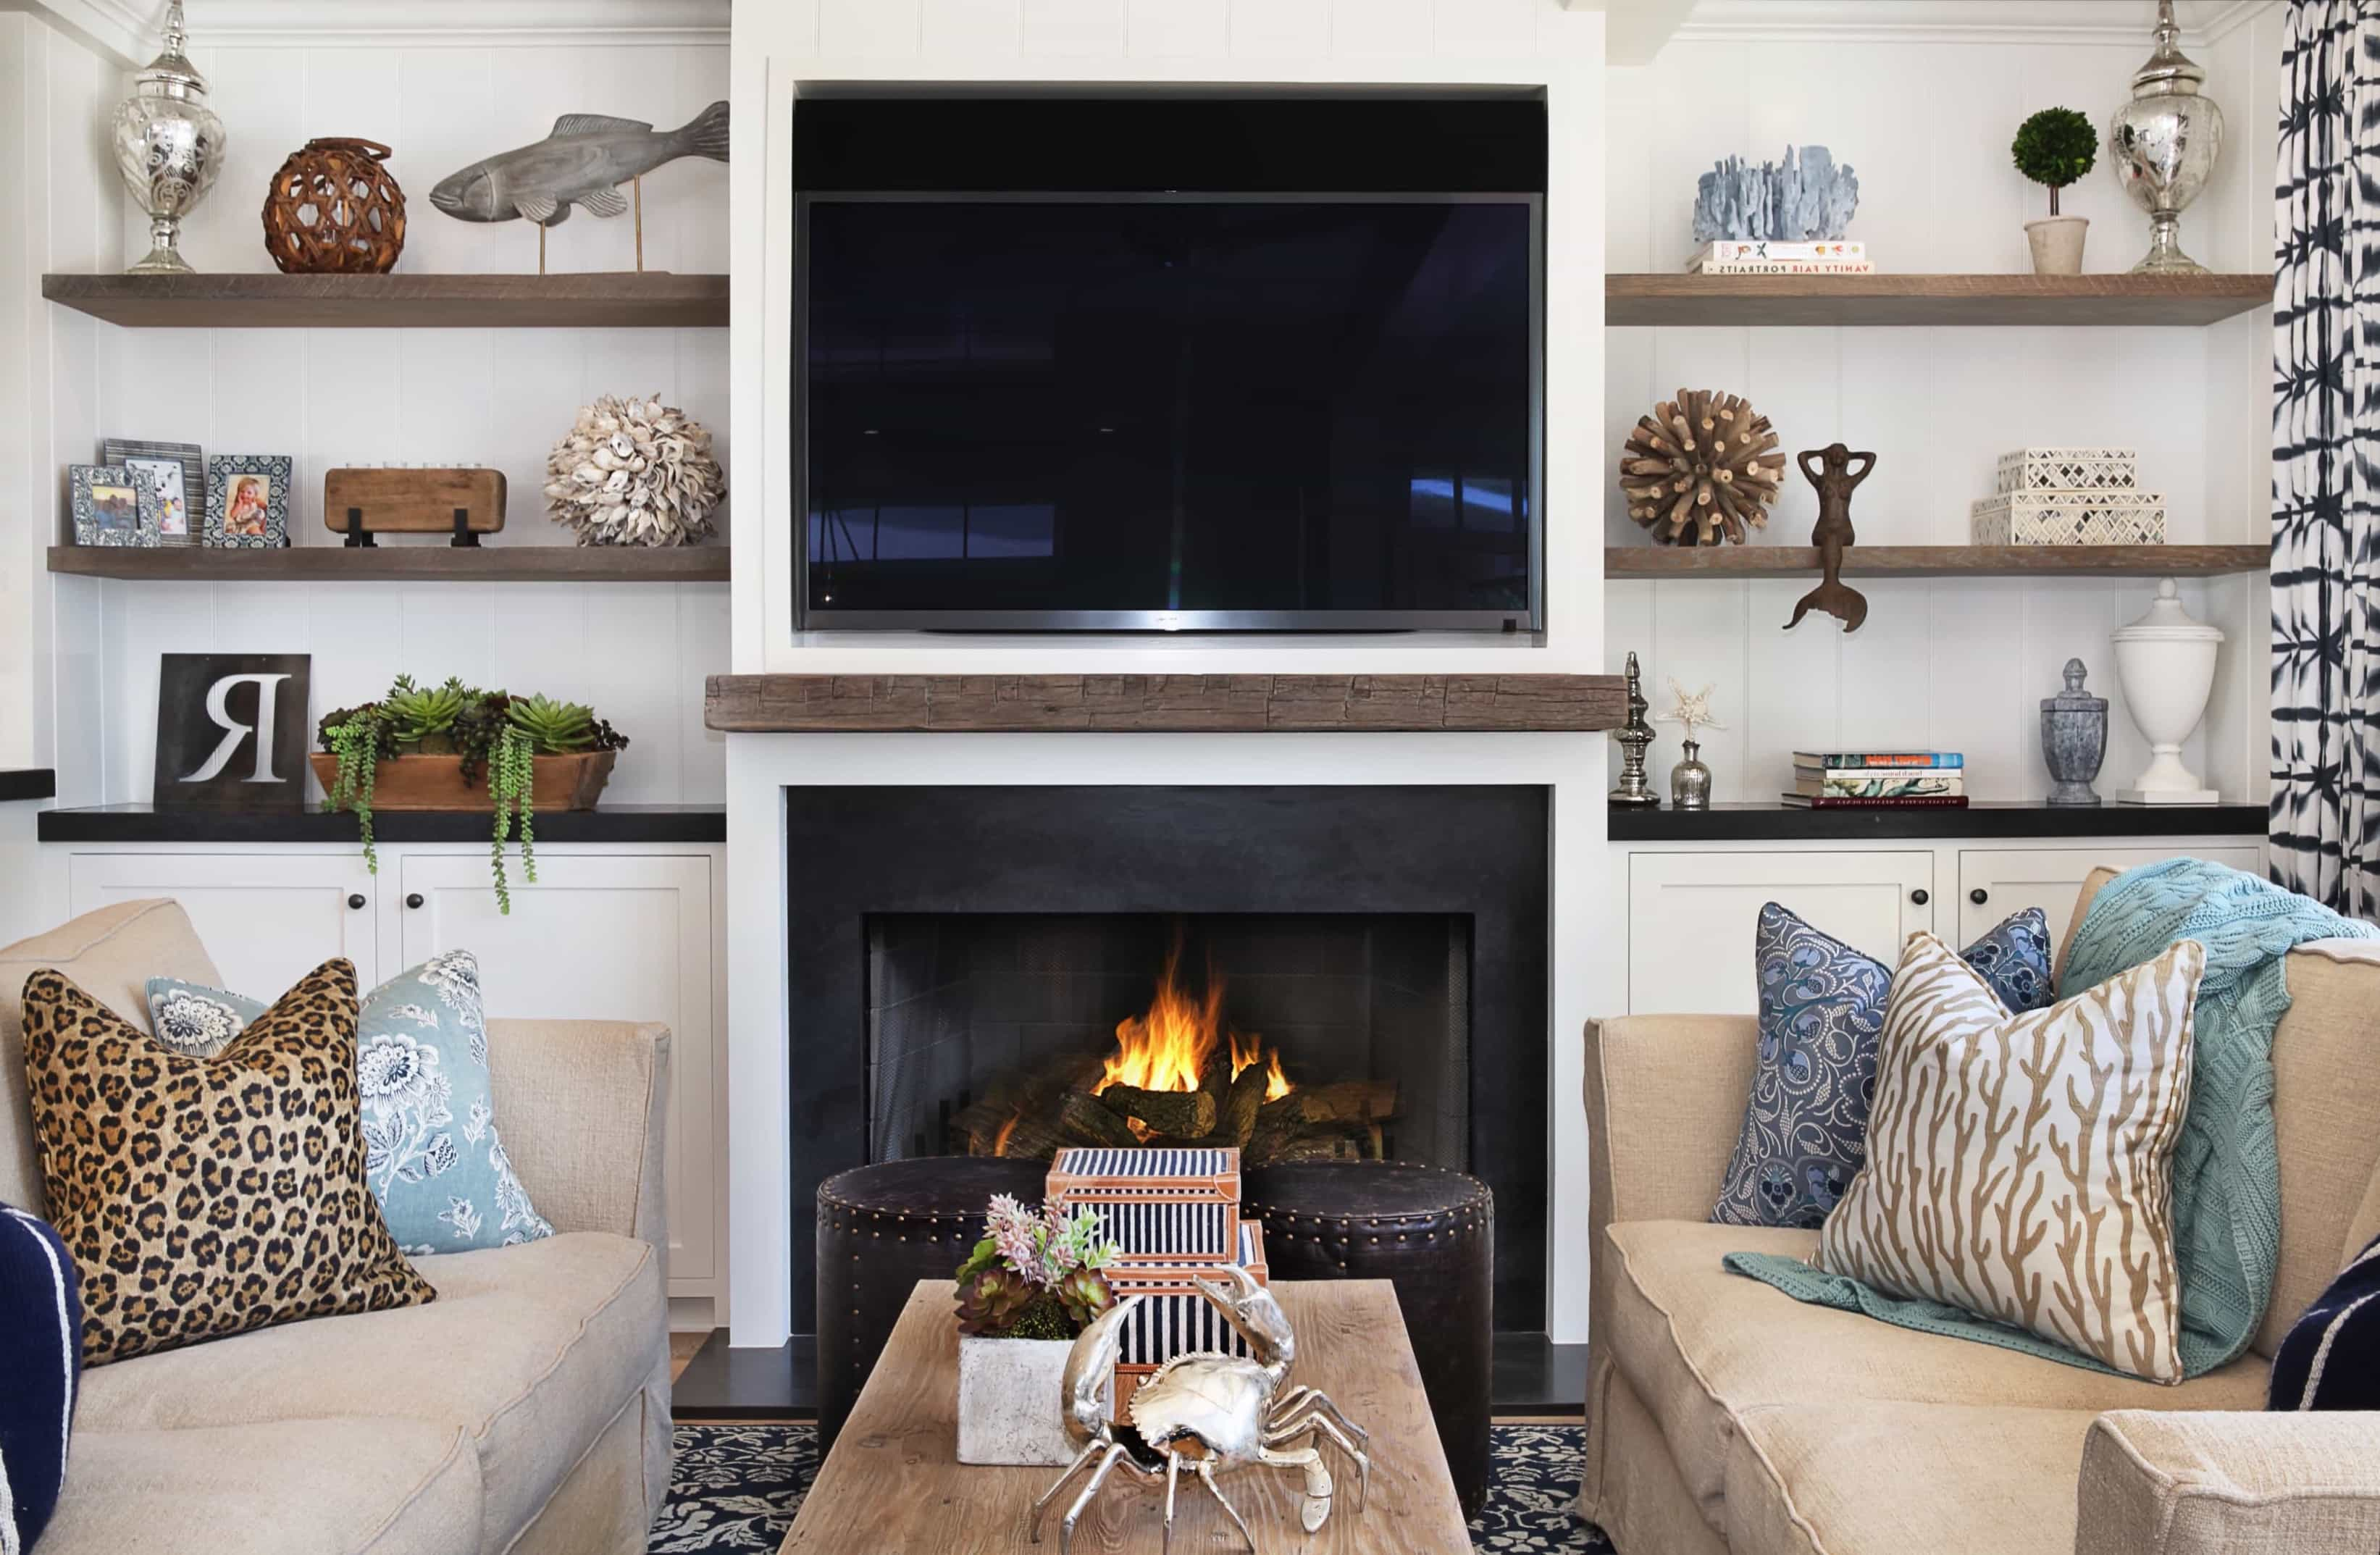 Featured Image of Neutral Coastal Living Room With Fireplace